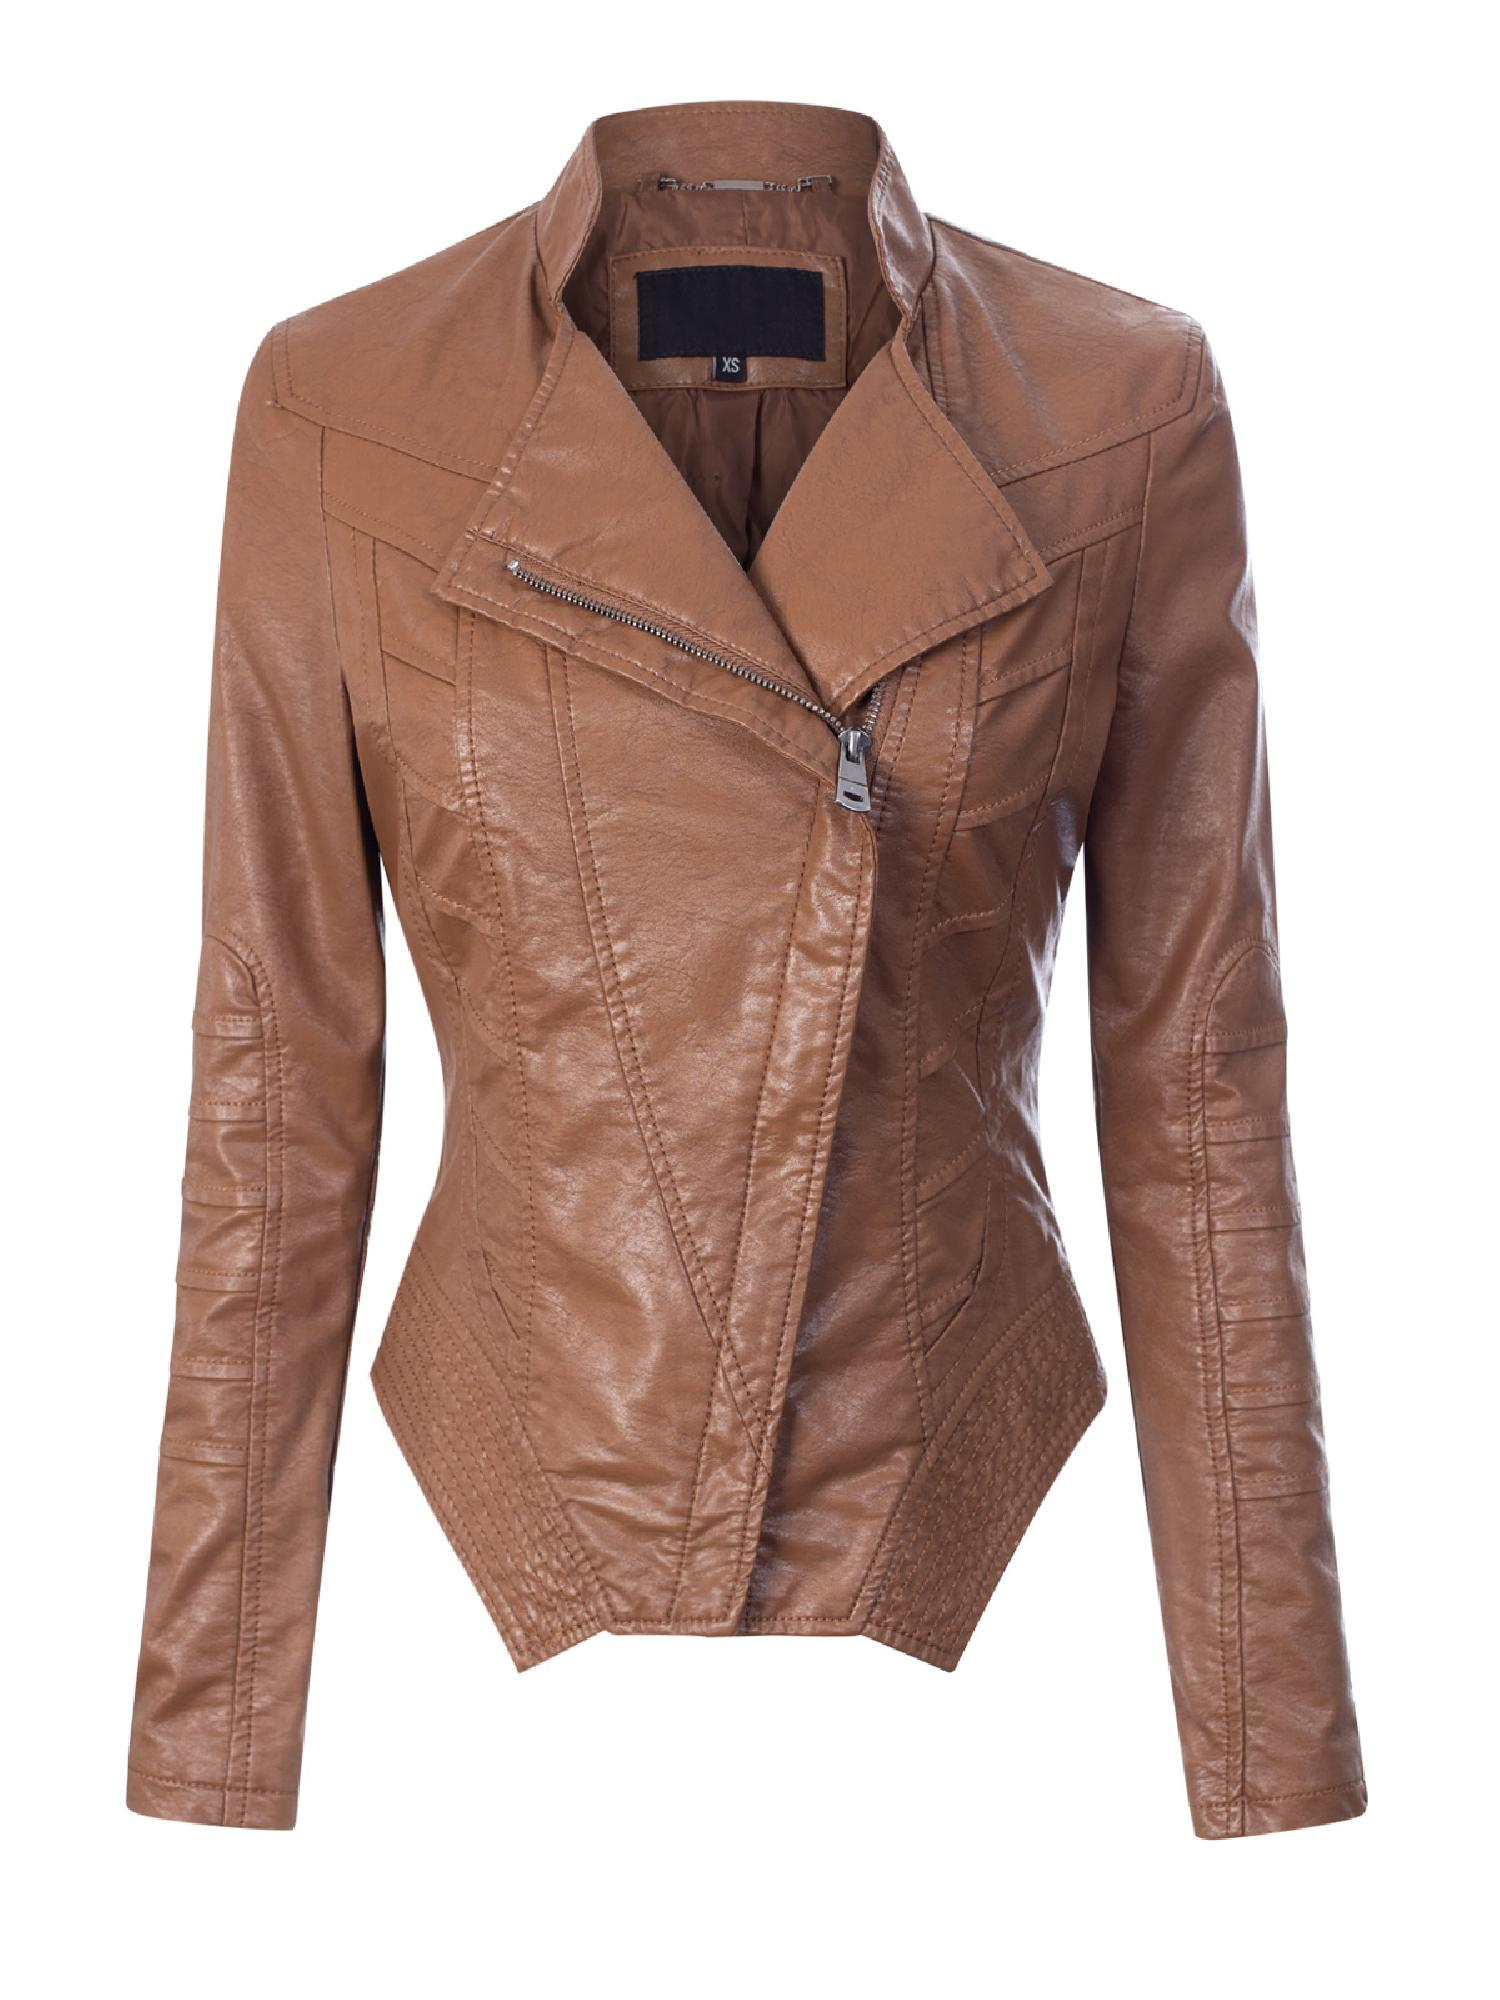 Design by Olivia Womens Fashion Motorcycle Asymmetrical Cropped Faux Leather Jacket